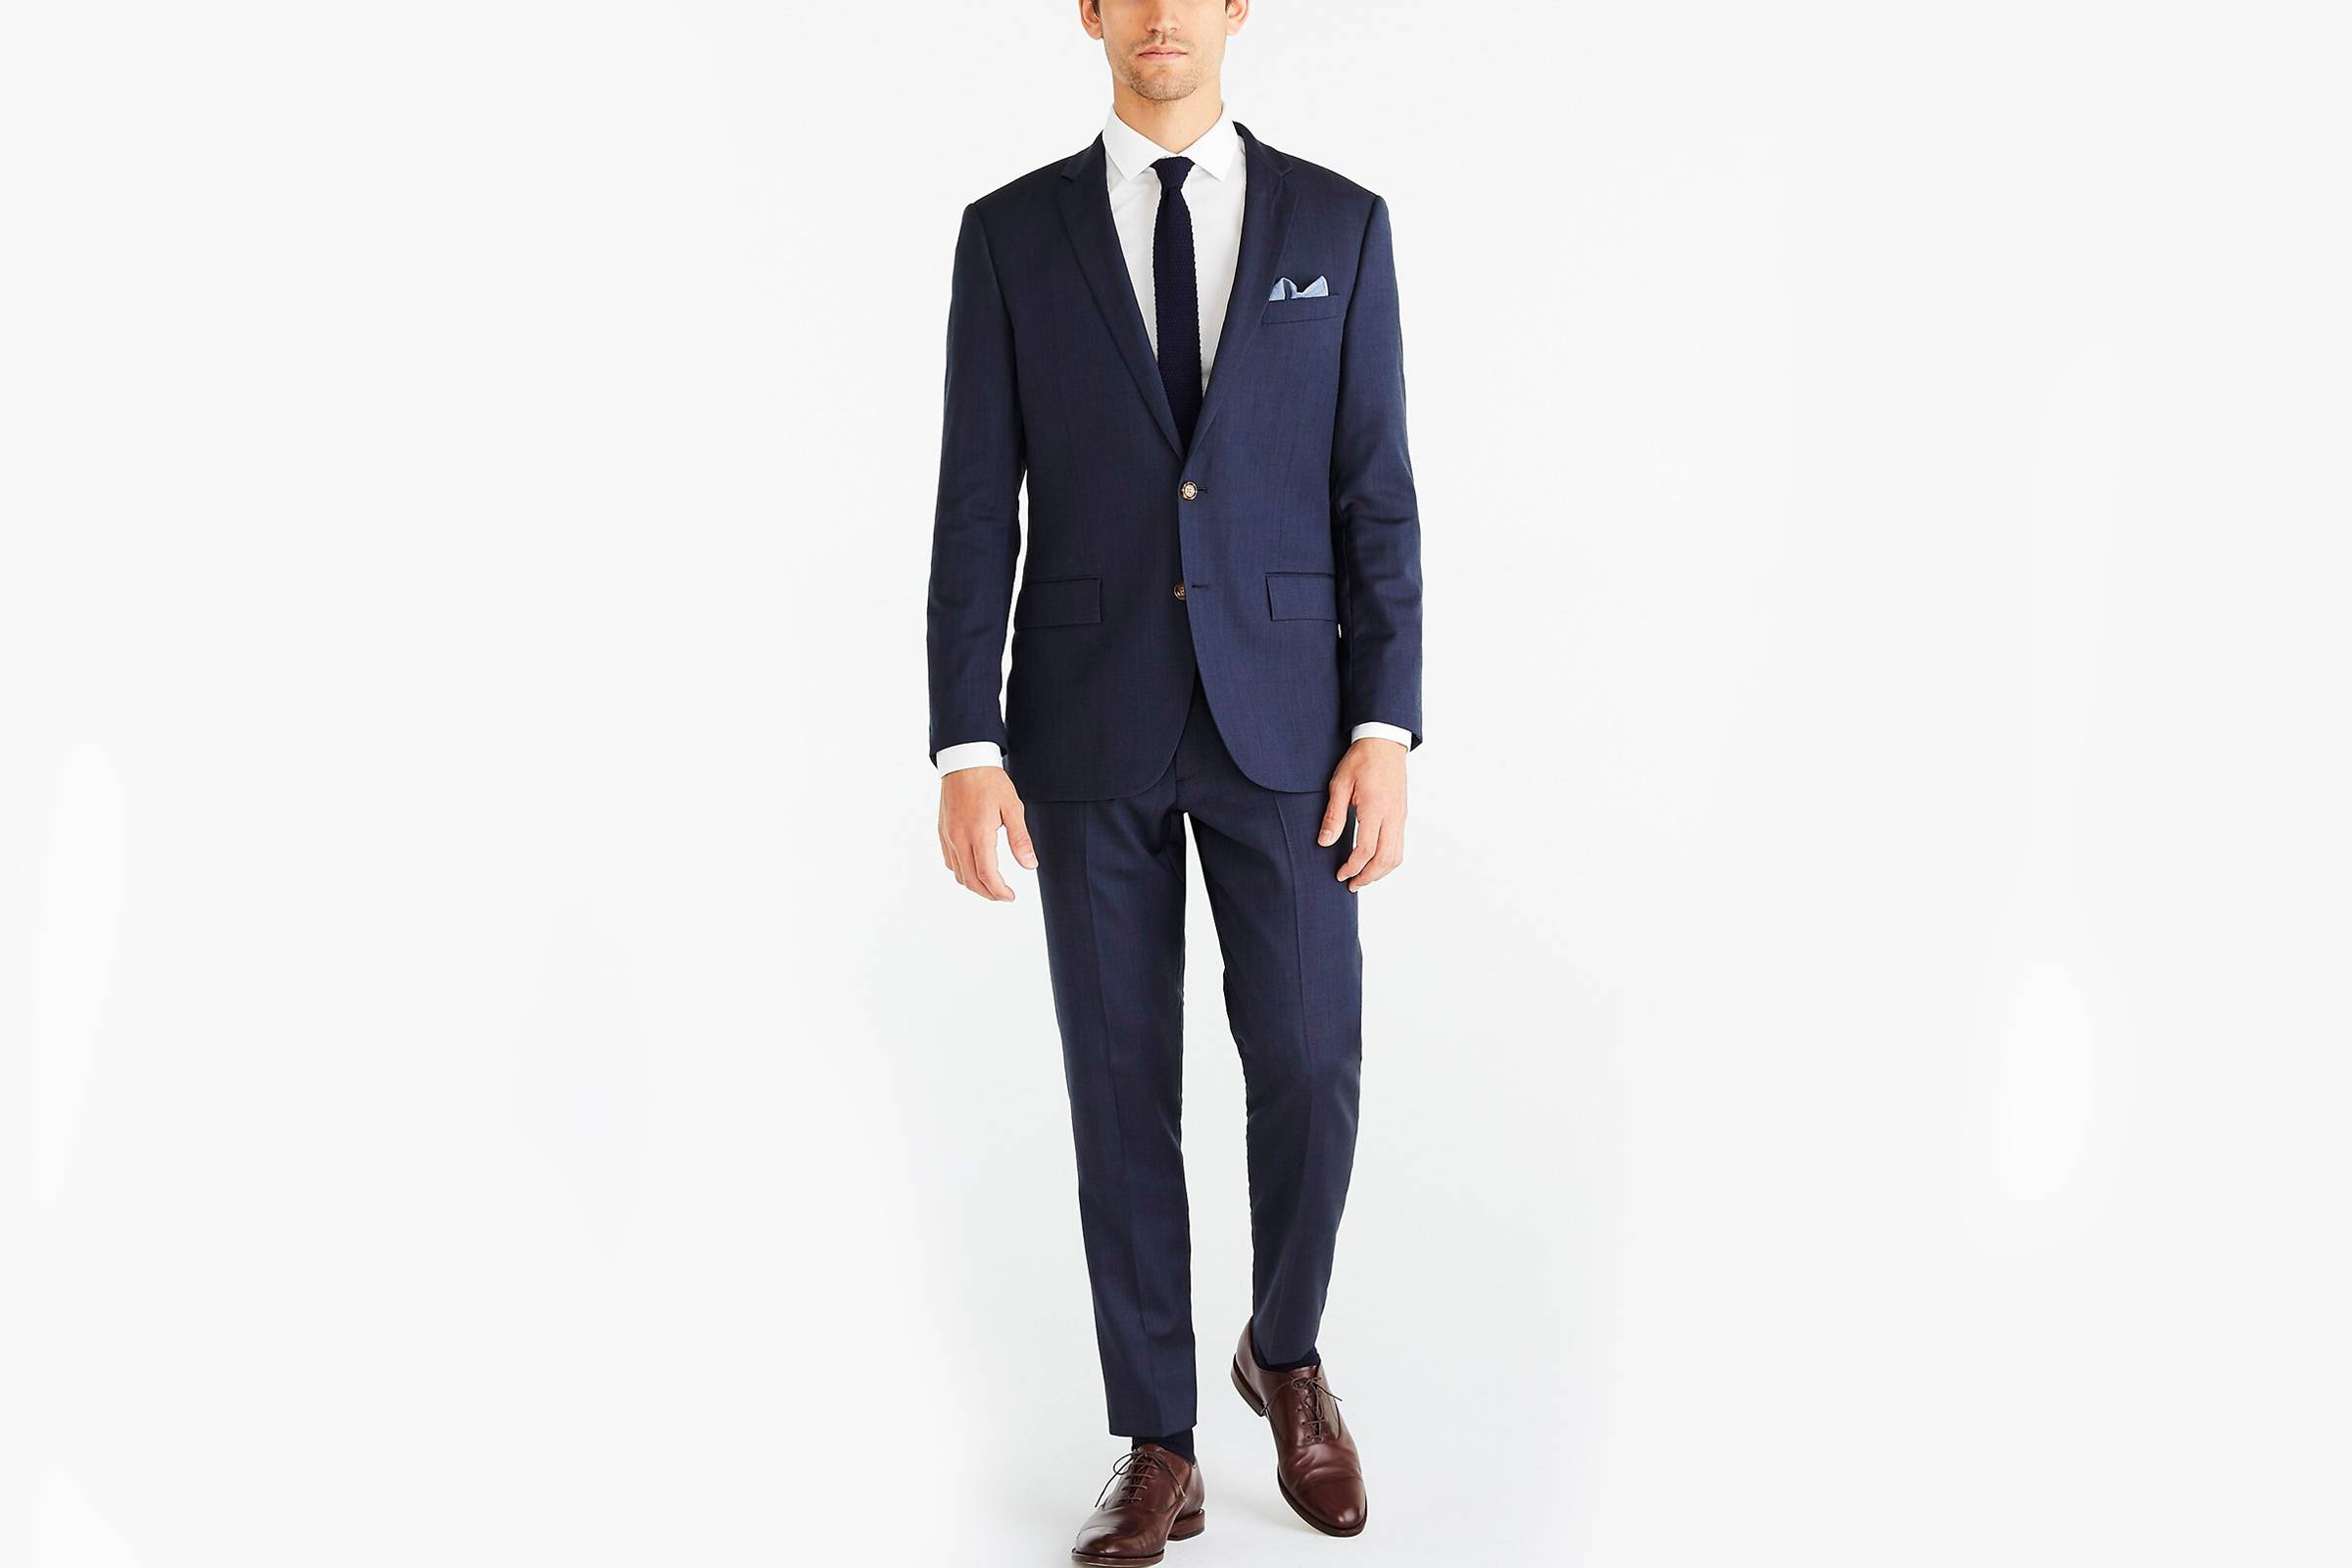 Types of Suits: Navy Single-Breasted Suit - Worsted Wool